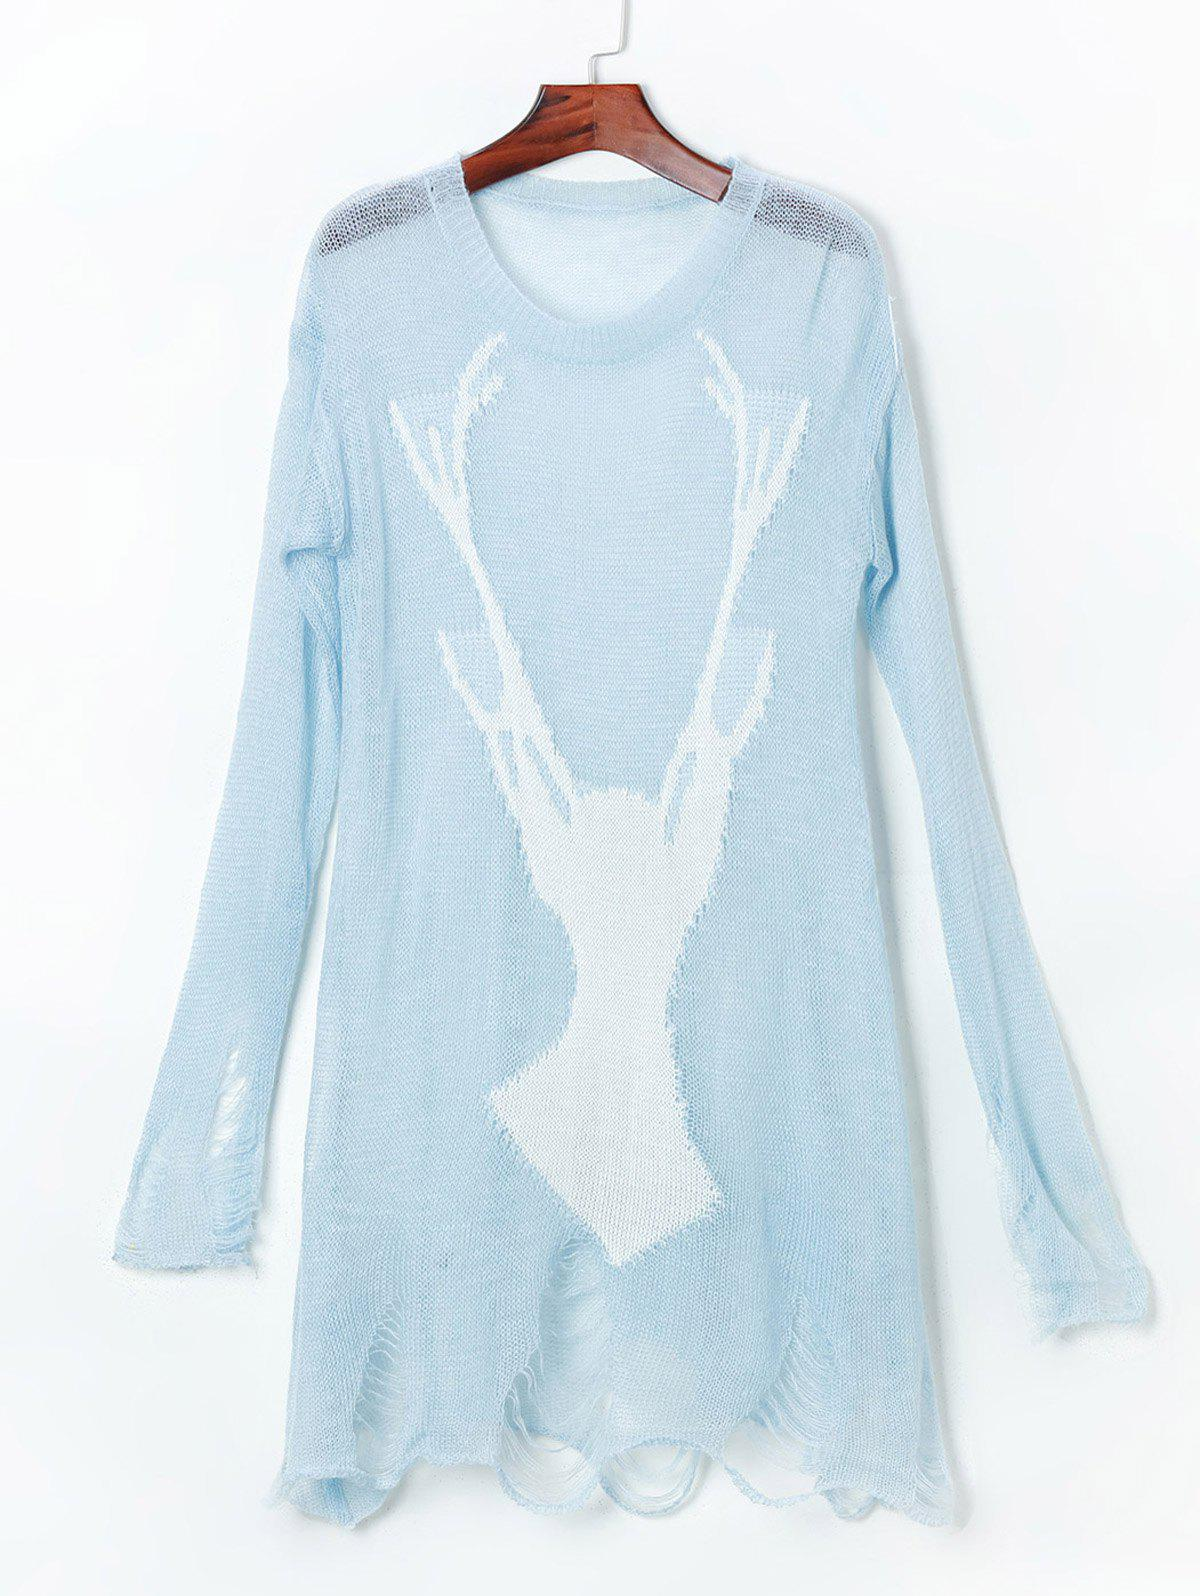 Open Knit Reindeer Ripped SweaterWOMEN<br><br>Size: ONE SIZE(FIT SIZE XS TO M); Color: LIGHT BLUE; Type: Pullovers; Material: Acrylic; Style: Fashion; Weight: 0.1900kg; Package Contents: 1 x Sweater;